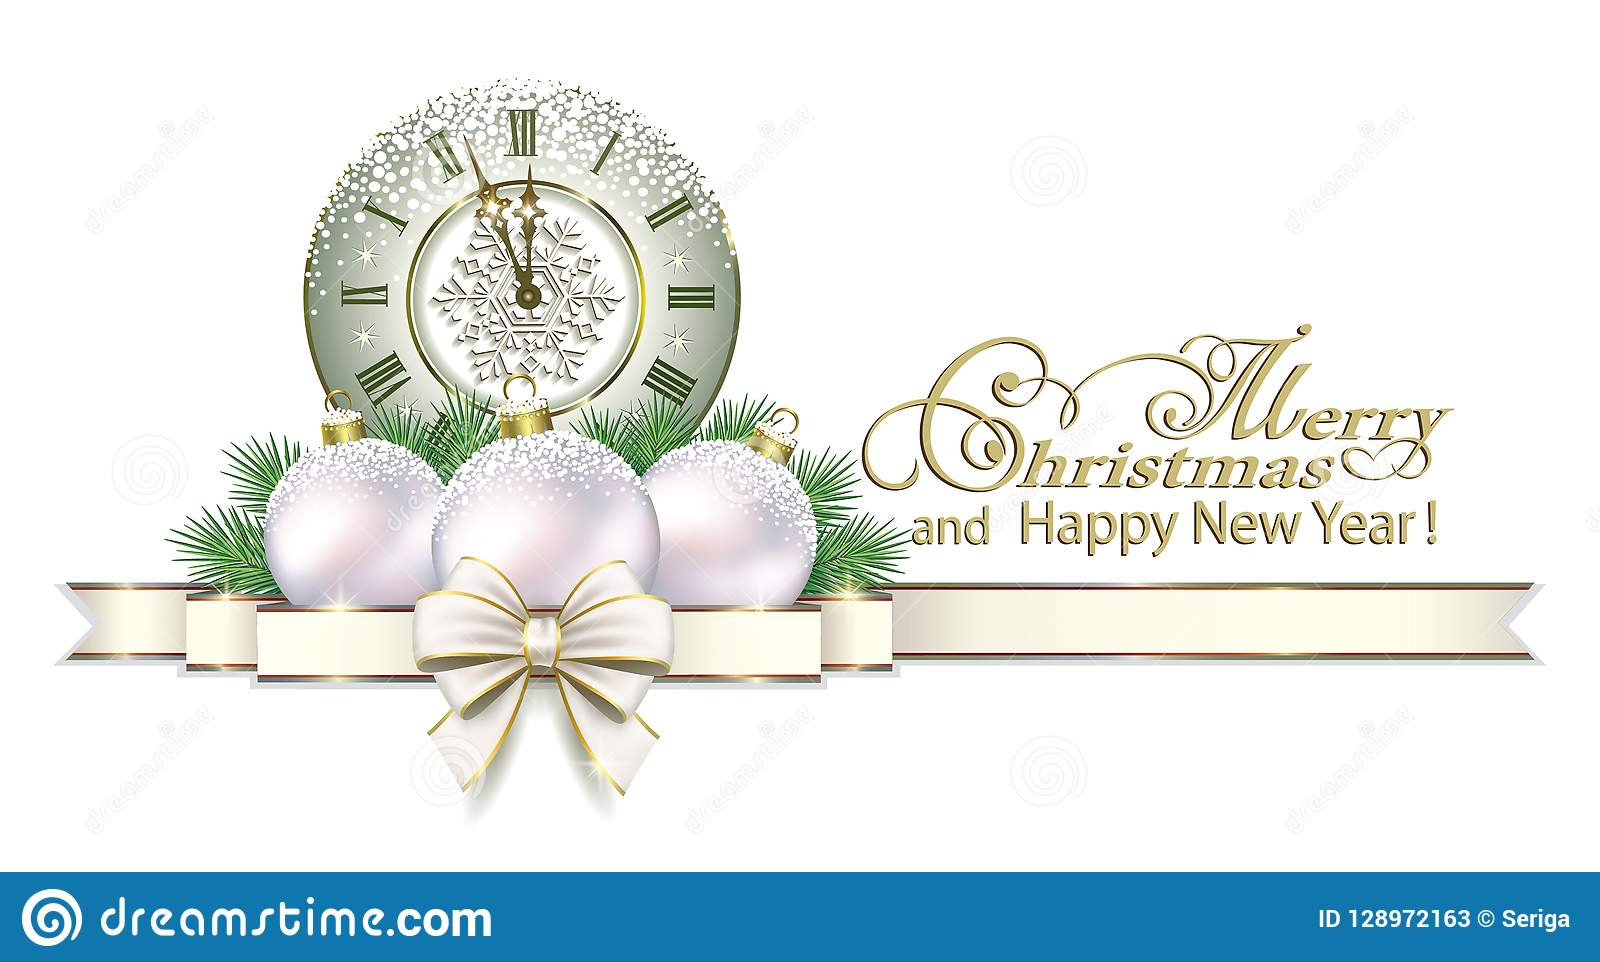 Happy New Year 2019 Christmas Card With Clock And Balls On A White